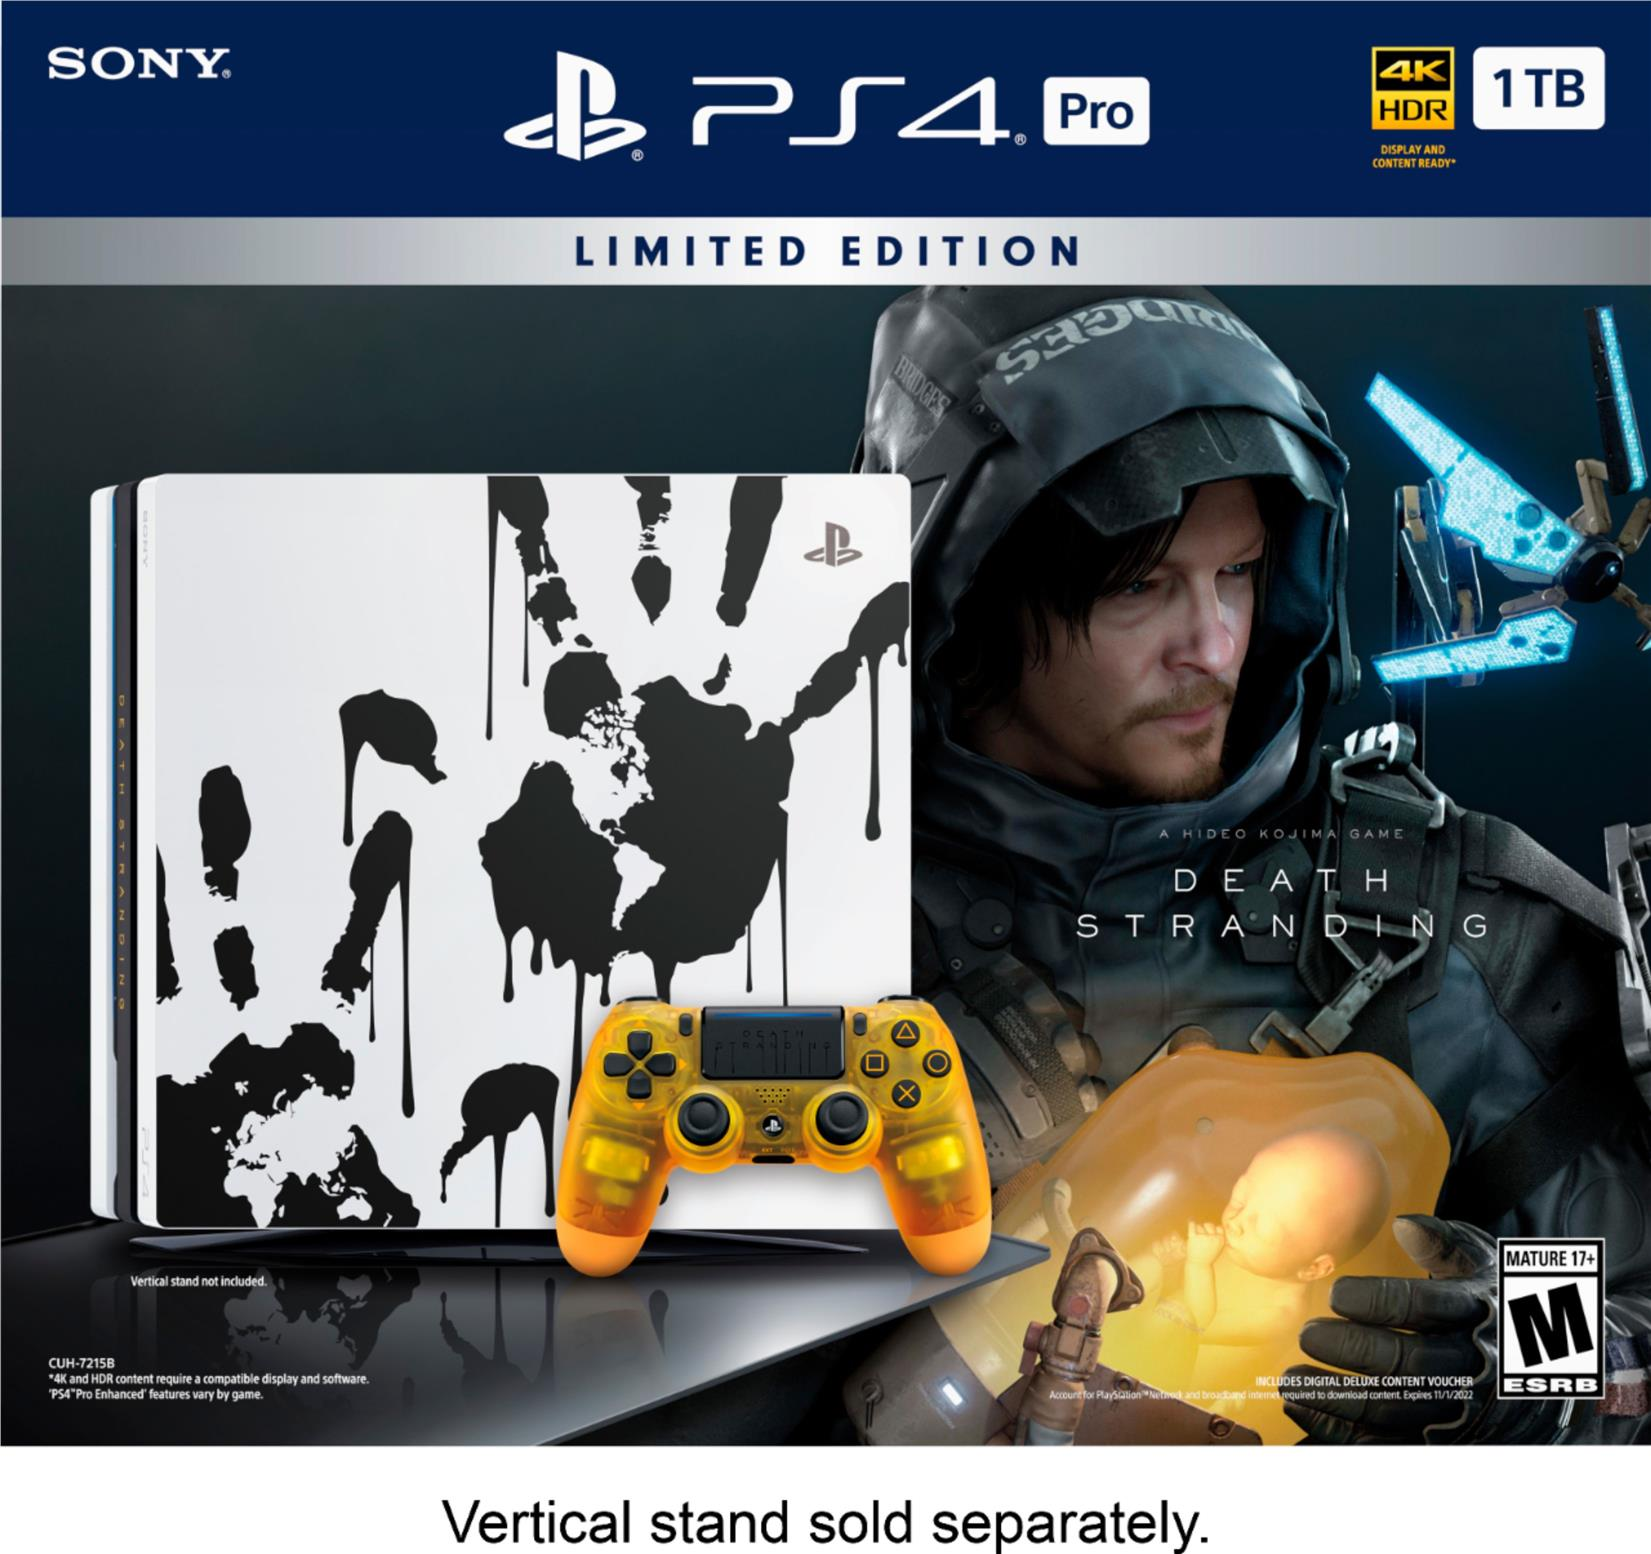 PlayStation 4 Pro 1TB DEATH STRANDING Limited Edition